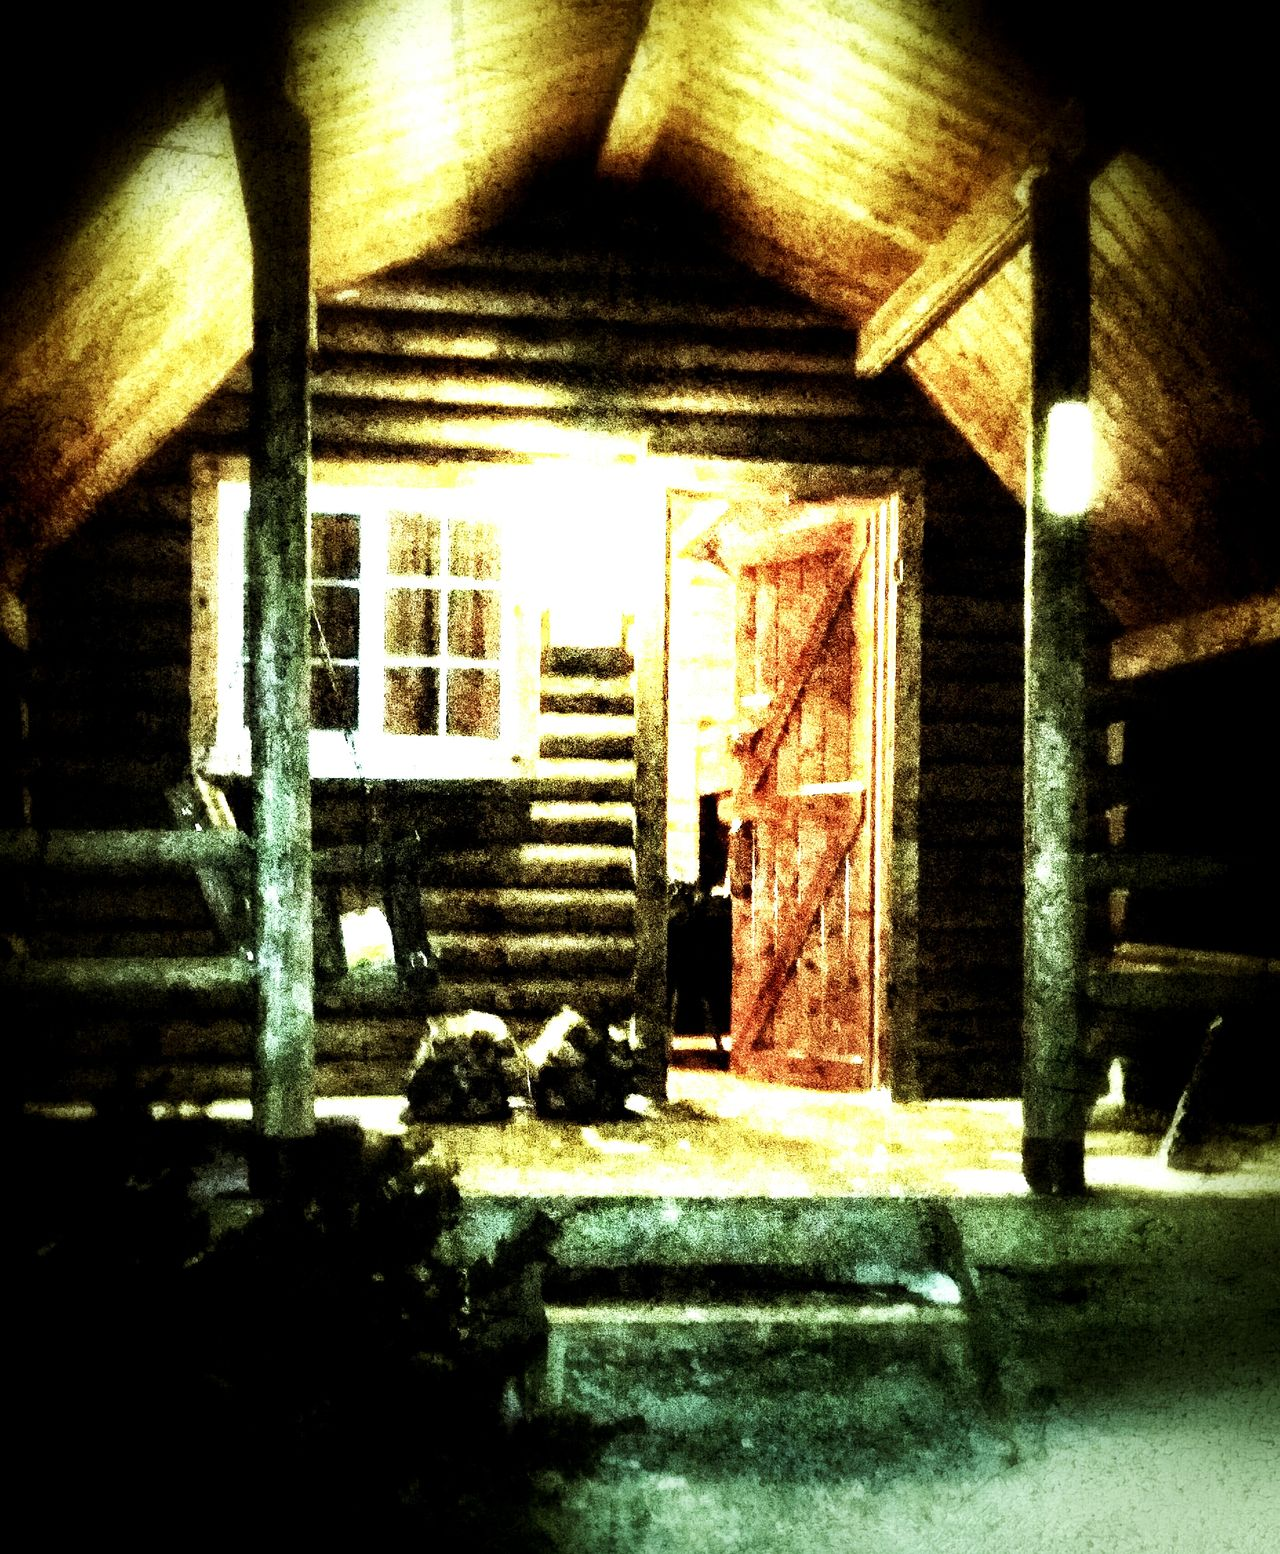 Our cabin for Valentine's Day!!! Cold night at the KOA. Camping Cabin Roughing It Noheat Hiking Campground Koa Virginia Love Outdoors